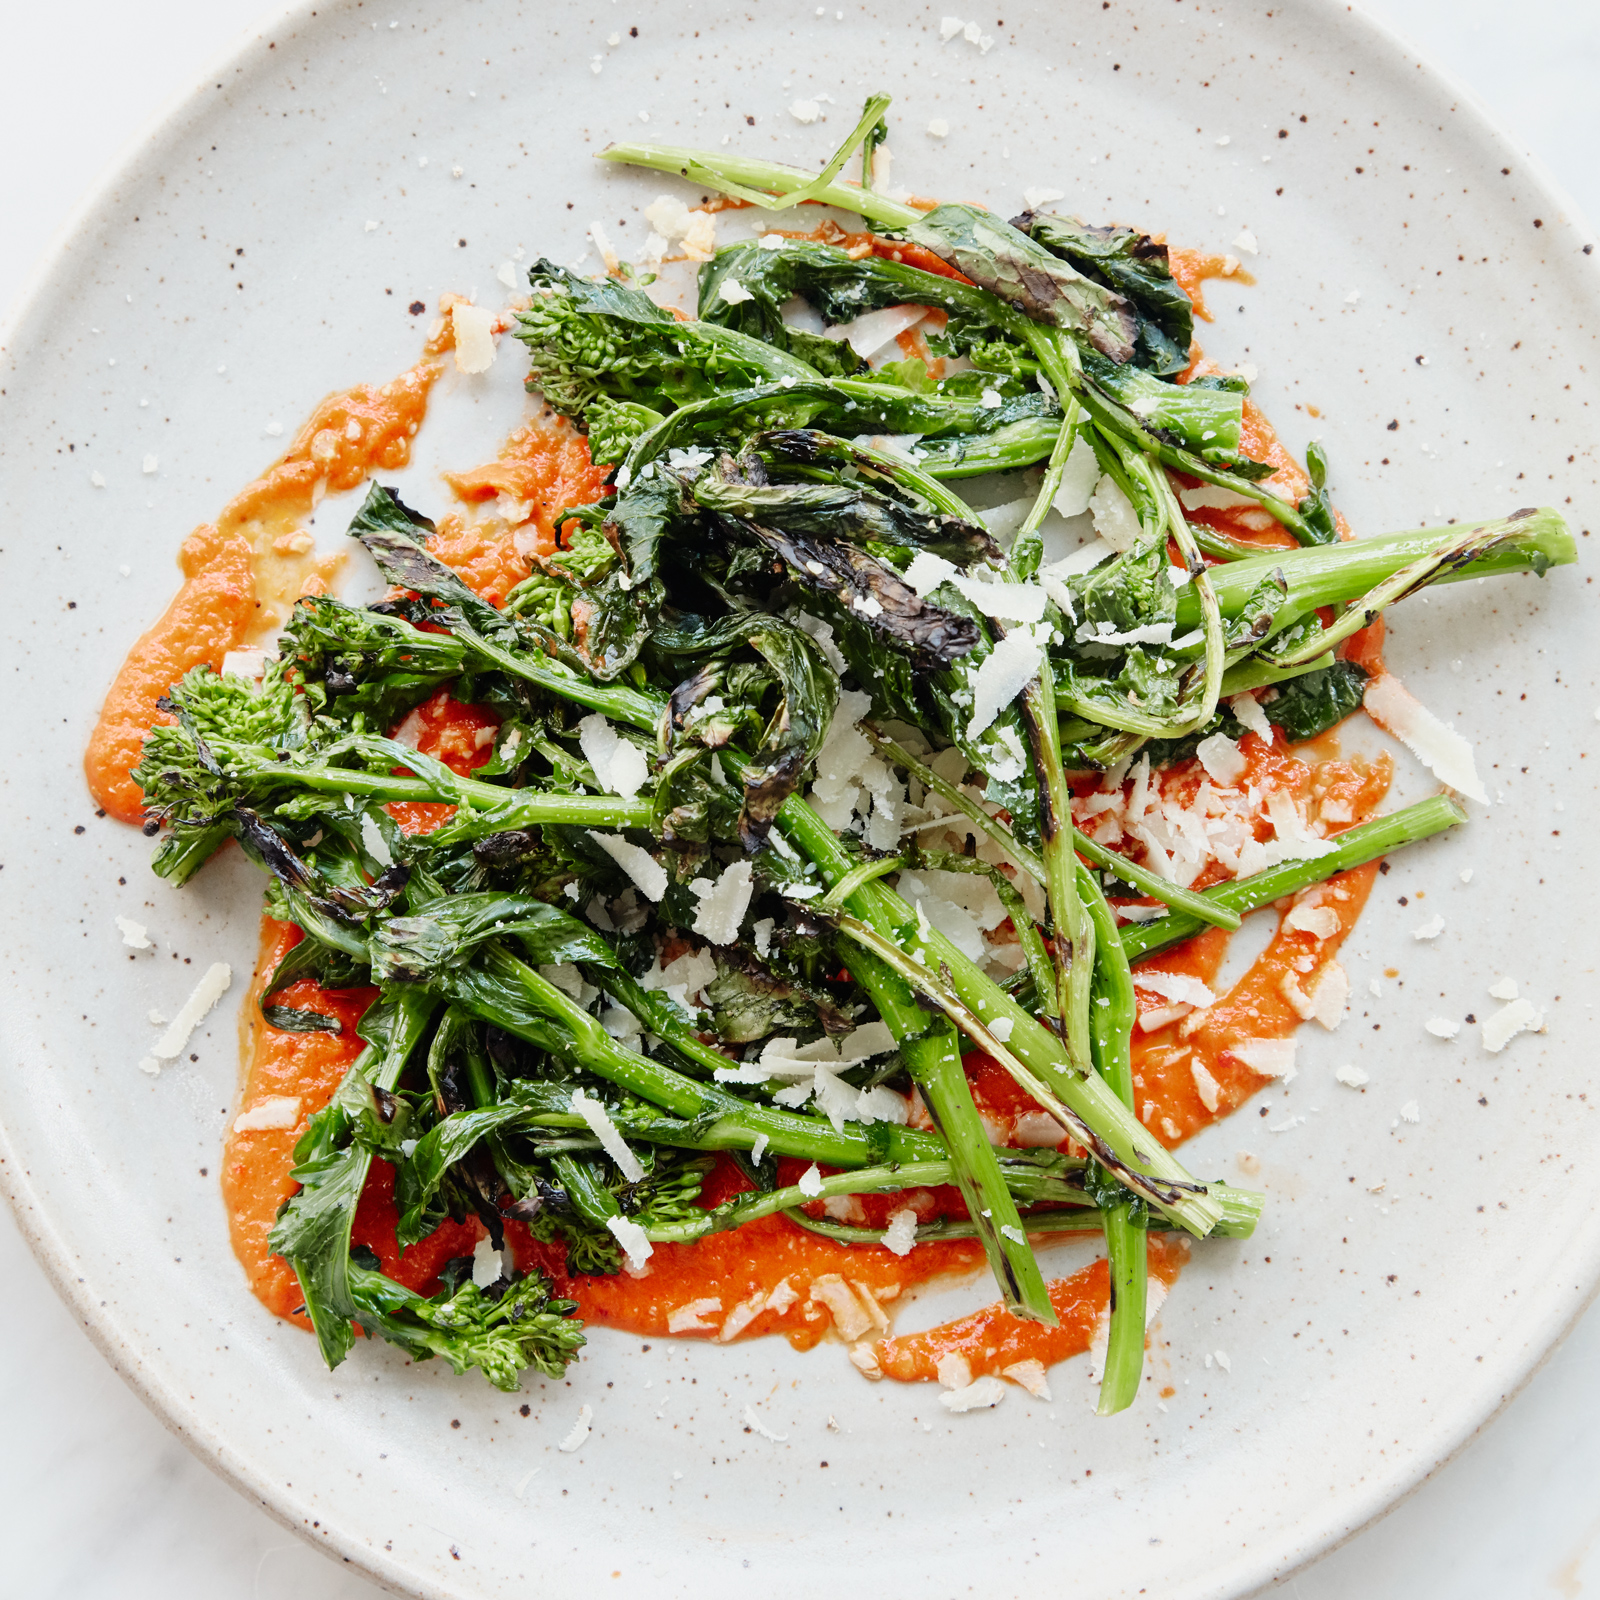 Grilled Broccoli Rabe with Salsa Rossa